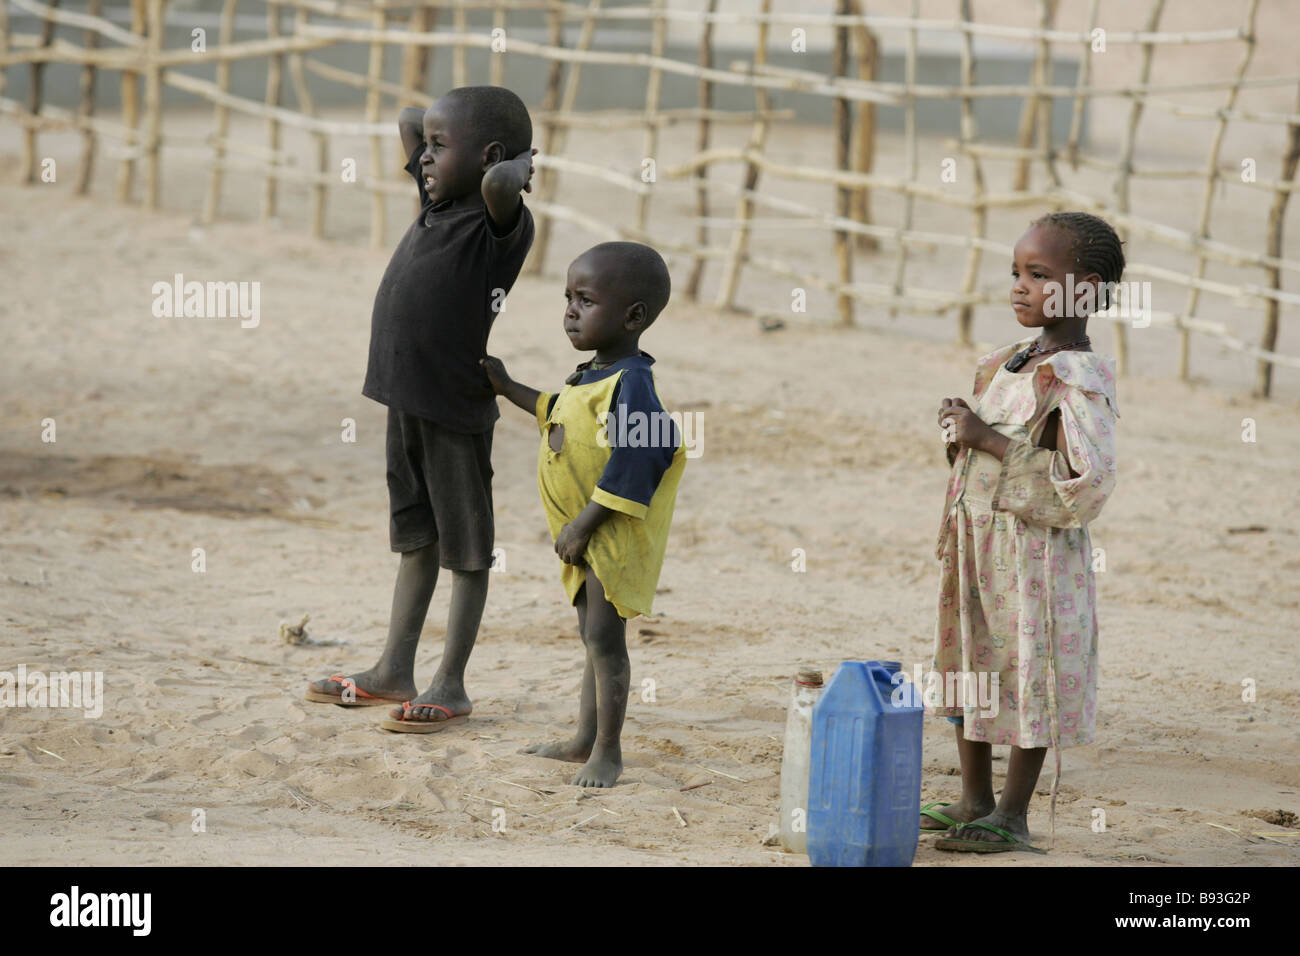 Children pictured  in an internally displaced persons (IDP) camp in Goz Beida, Eastern Chad, Africa Stock Photo